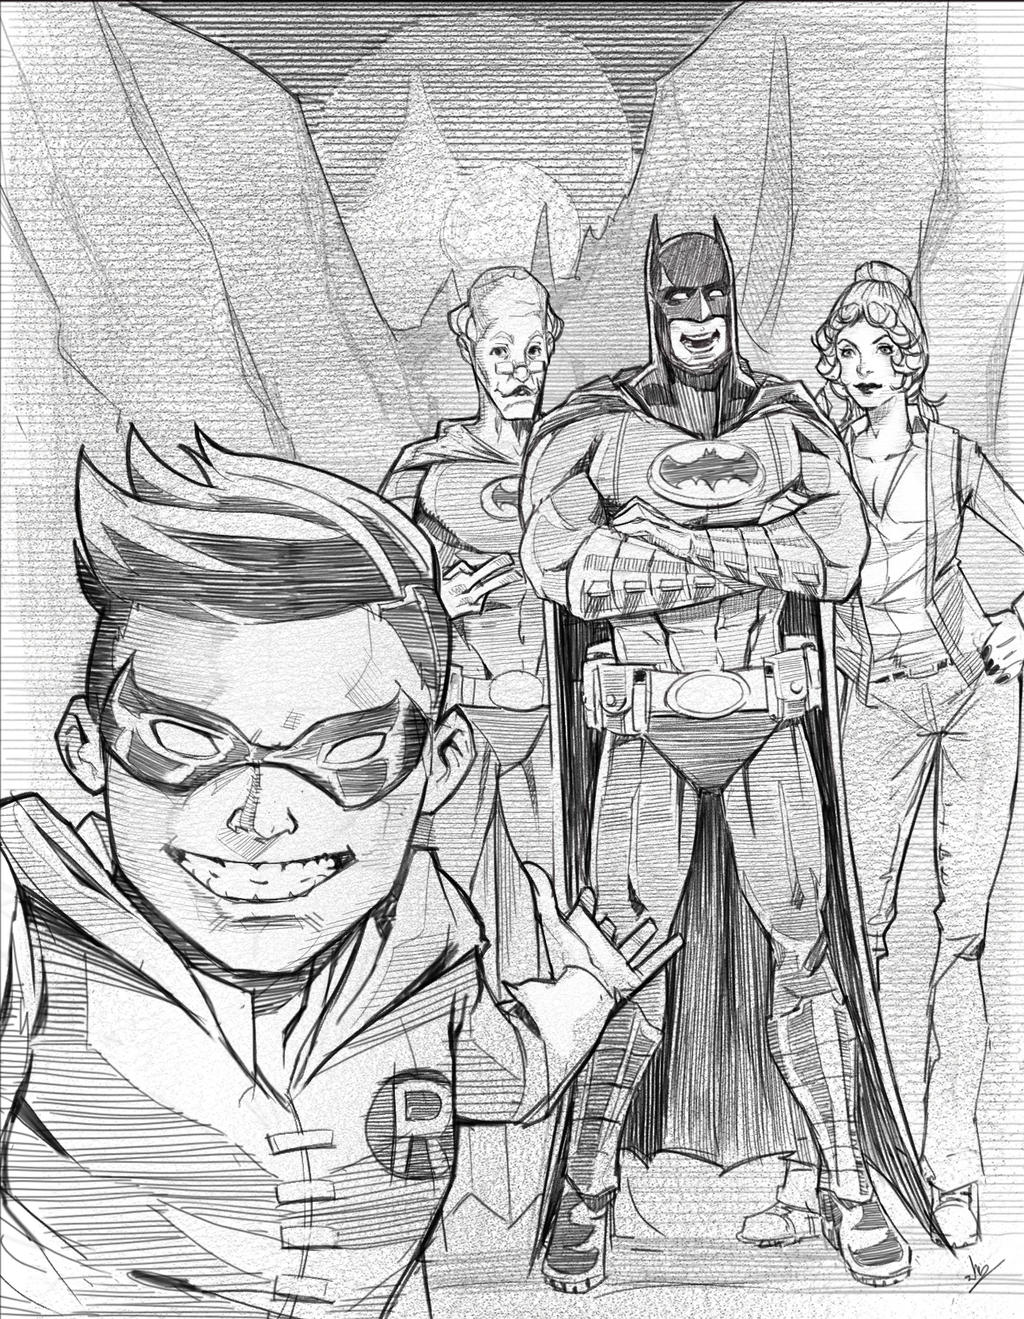 Lego Batman Sketch Fanart By Panotsonsuwon On DeviantArt